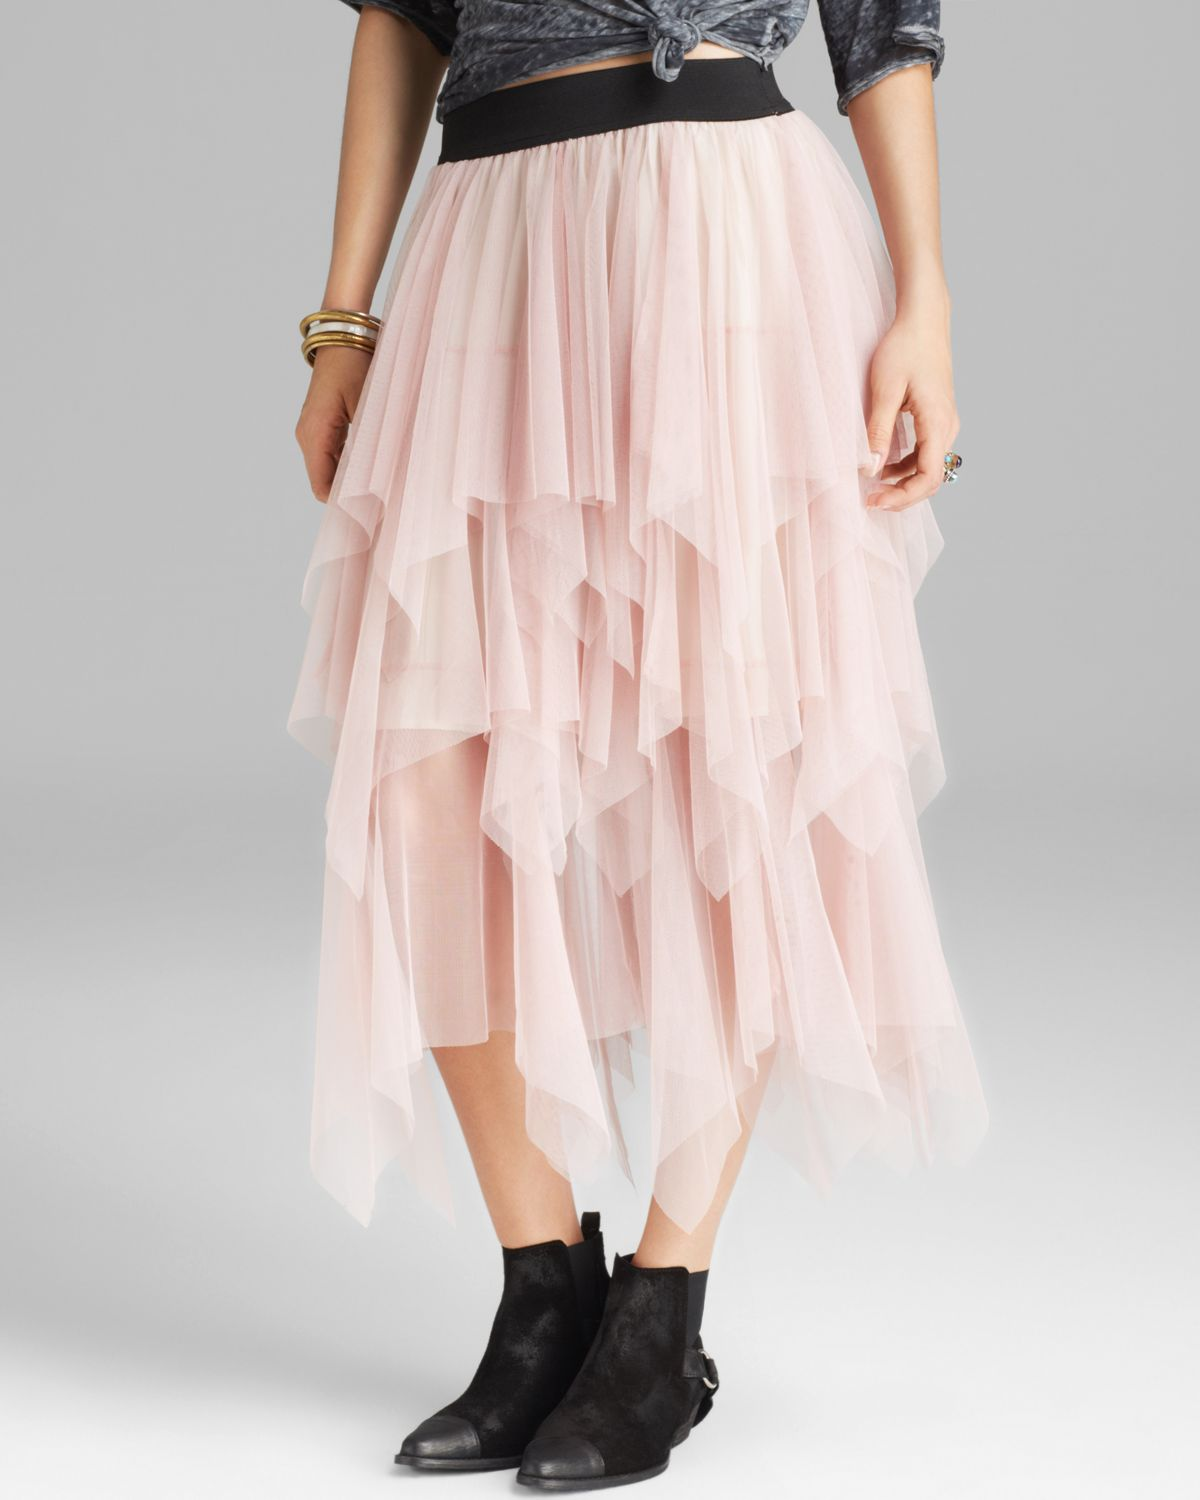 829124b0a66a9 Lyst - Free People Skirt Mesh Lace Tutu in Pink